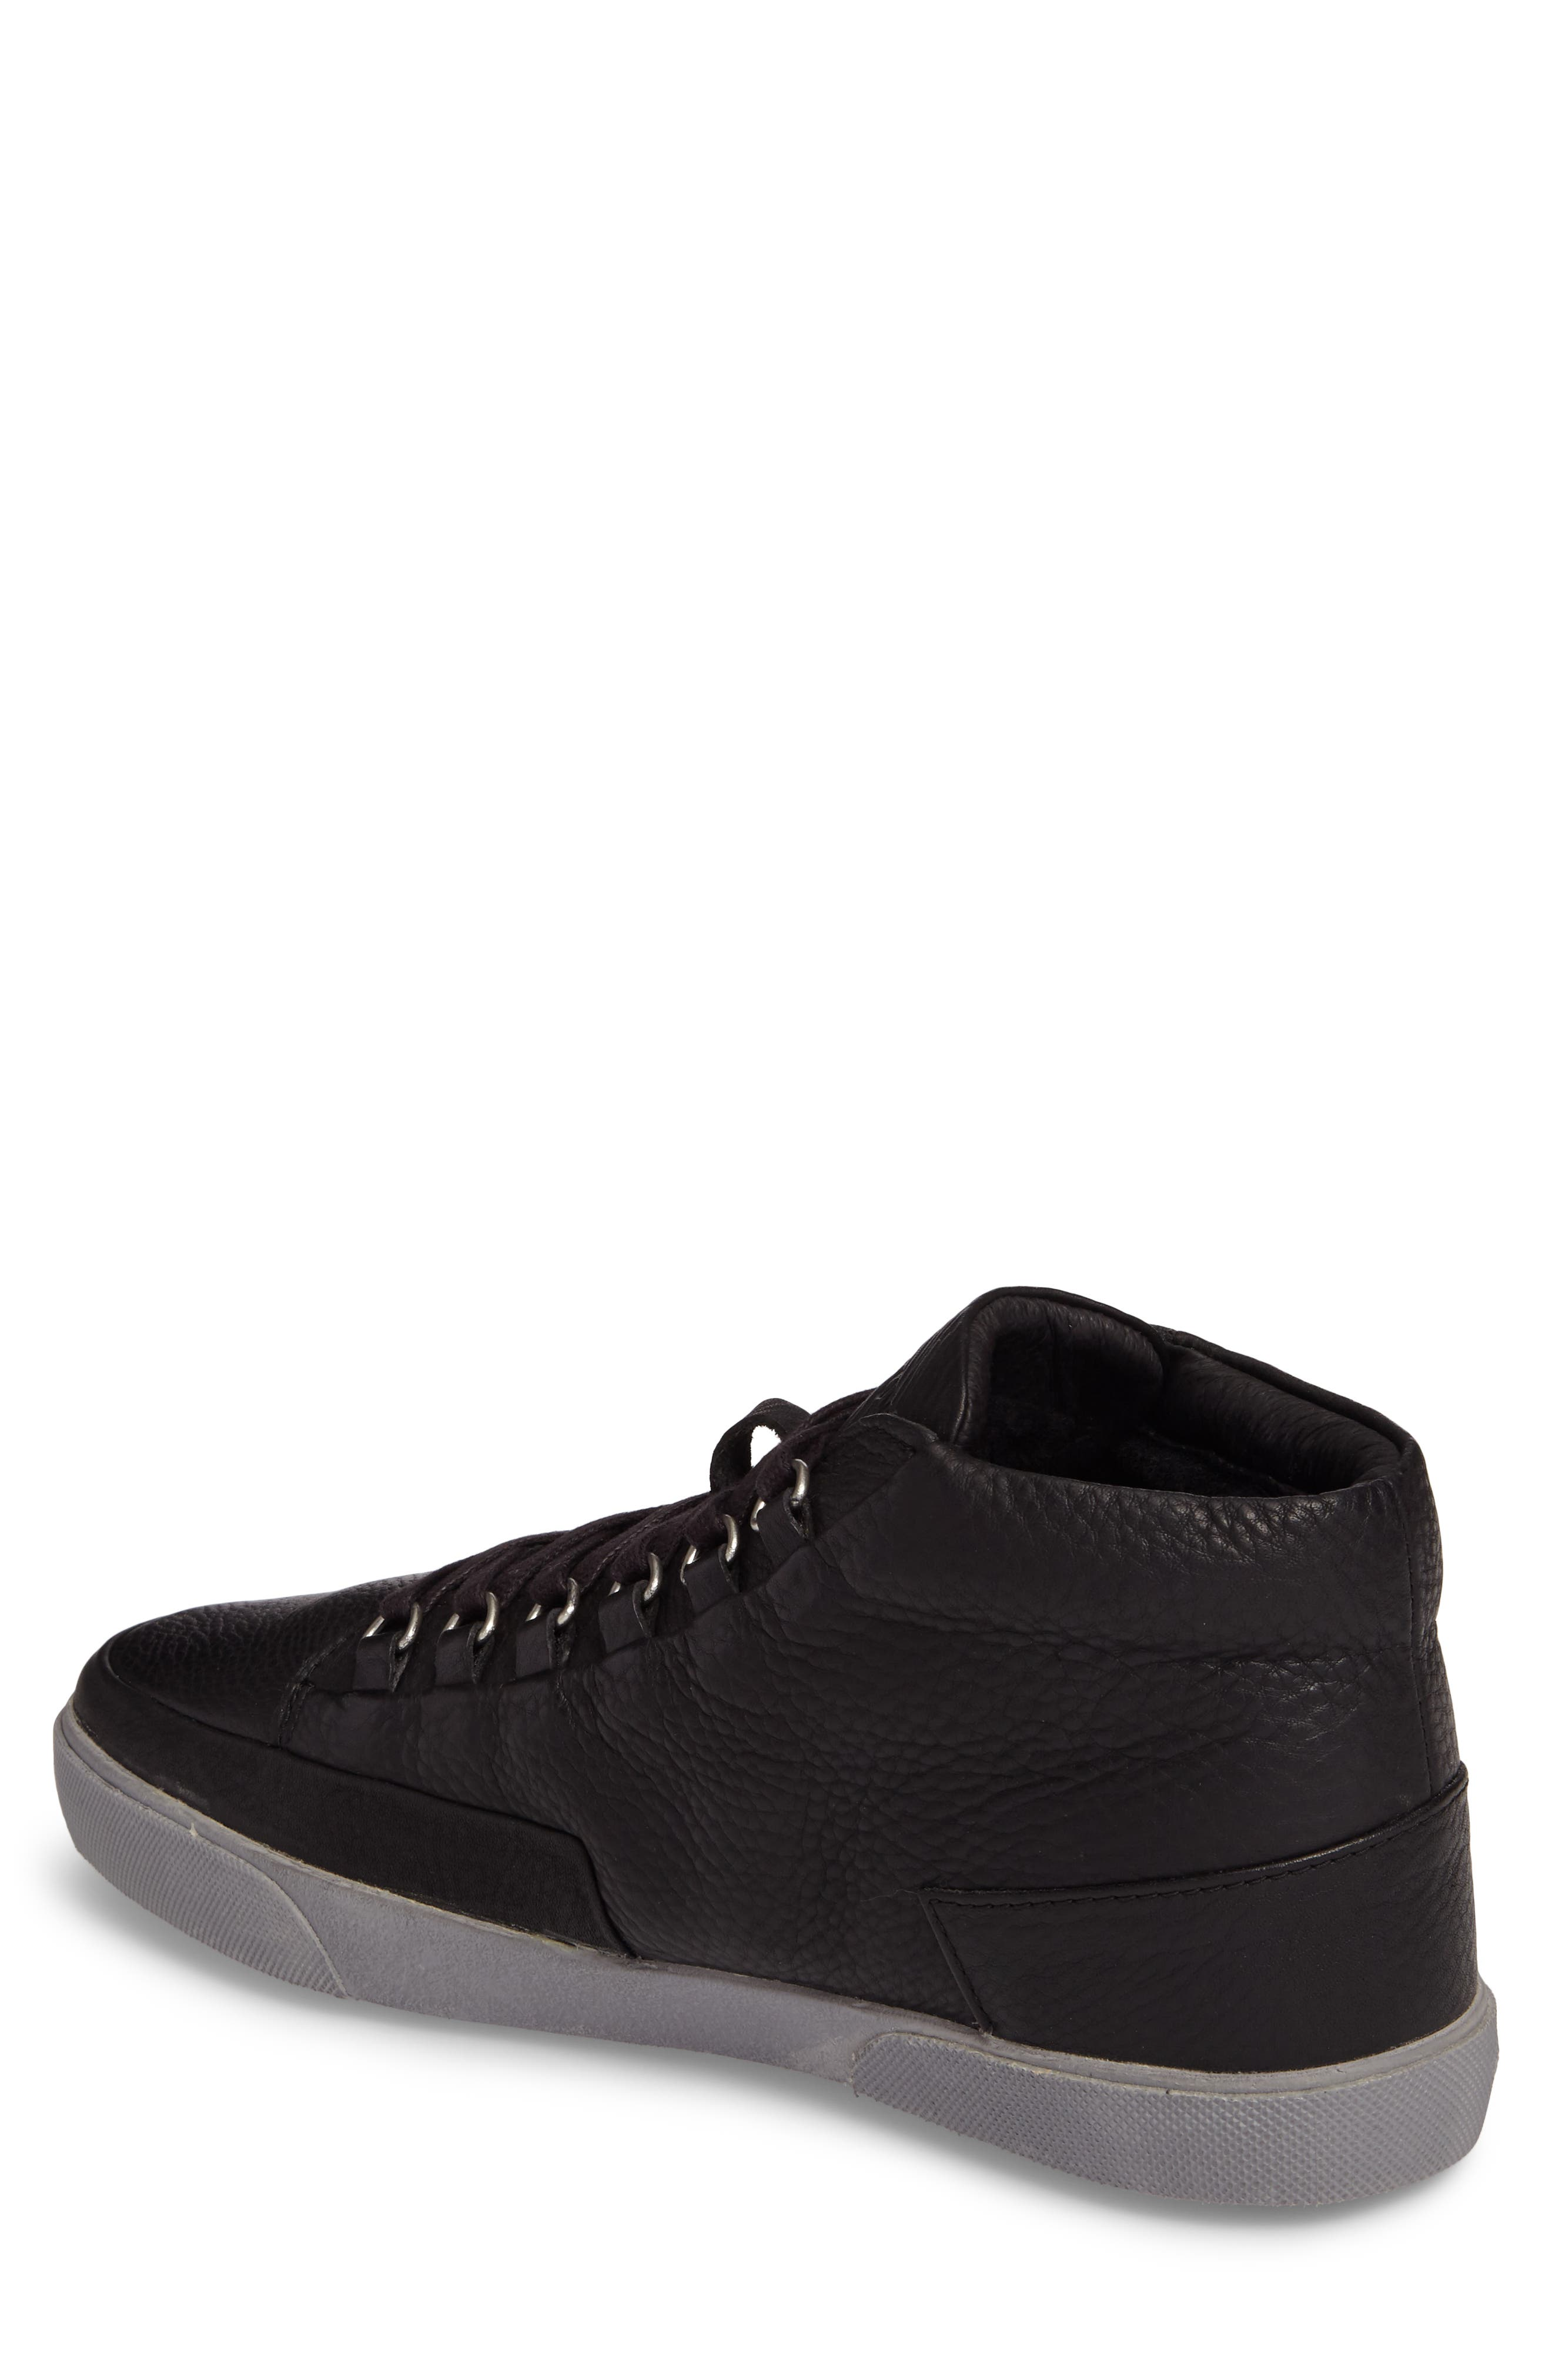 KM 02 Sneaker with Genuine Shearling Lining,                             Alternate thumbnail 2, color,                             001